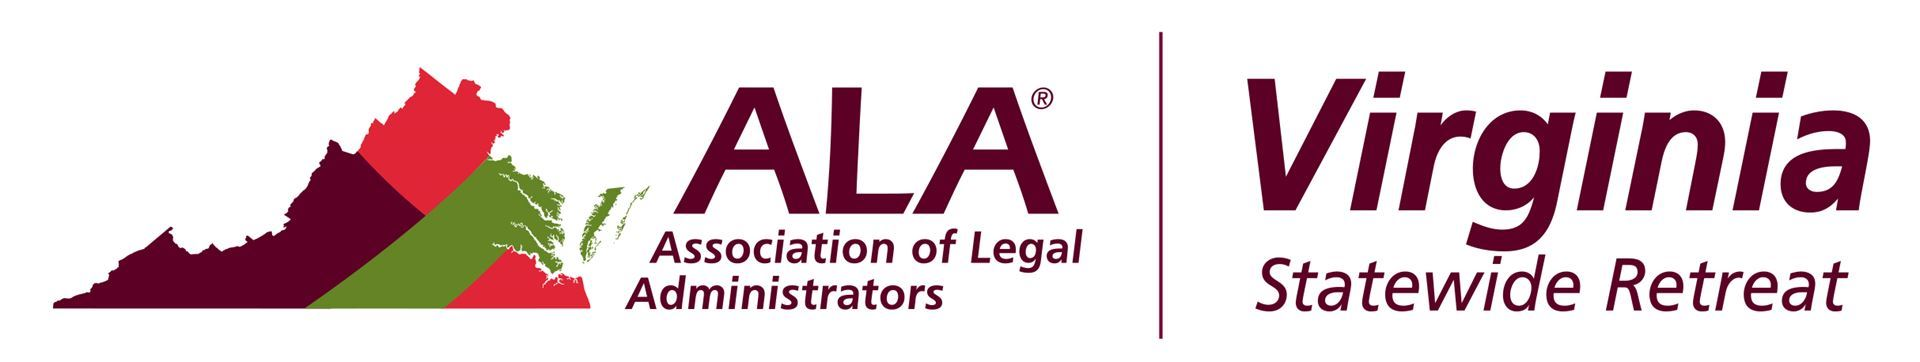 Virginia Association of Legal Administrators Statewide Retreat